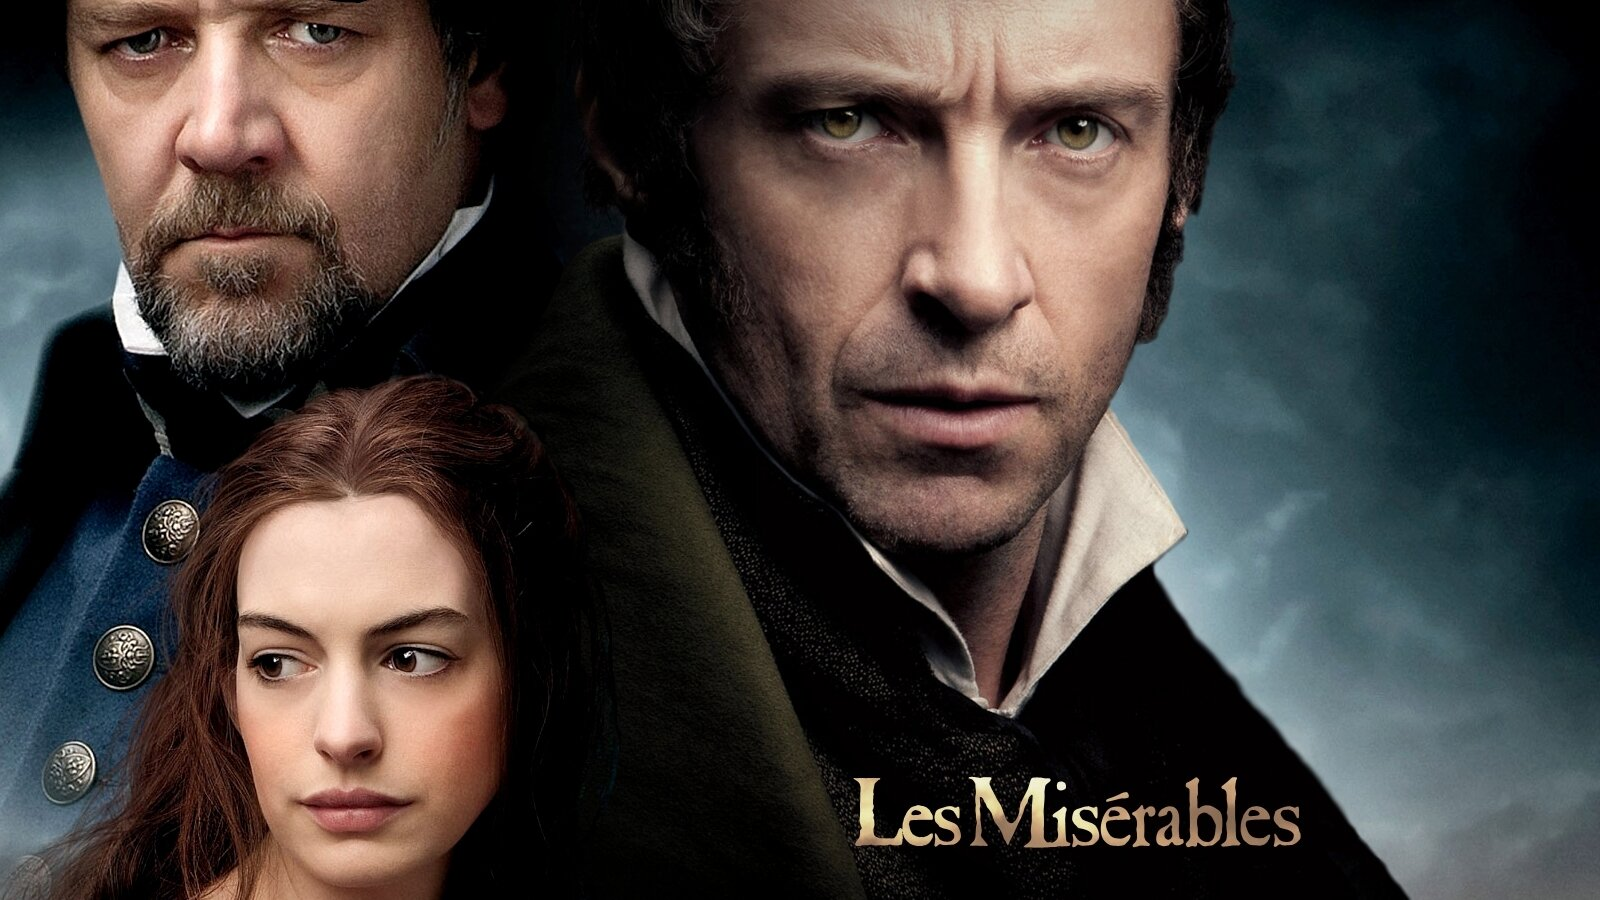 Les_Miserables_Wallpaper_Movie.jpg